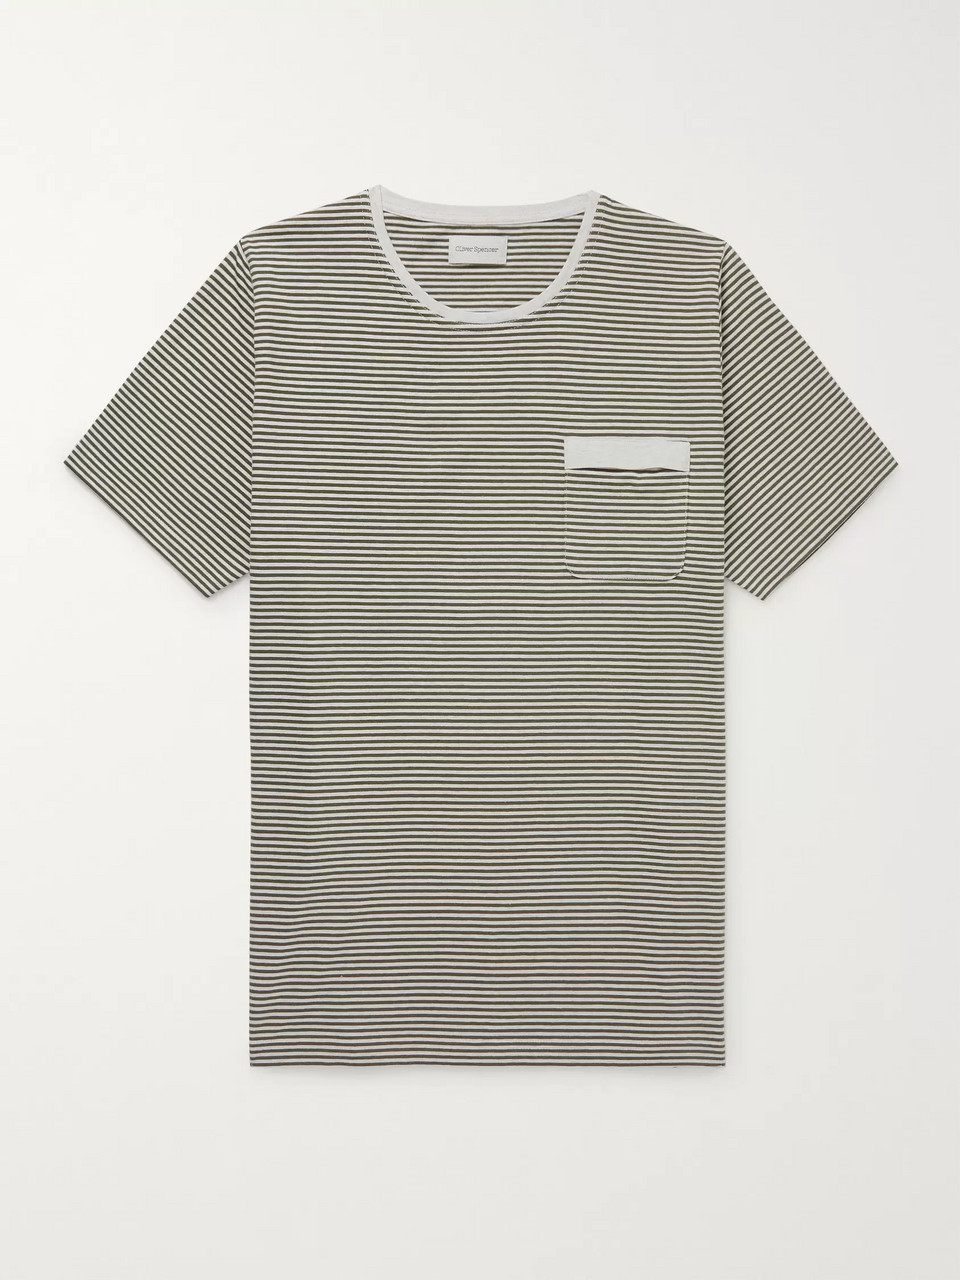 Oliver Spencer Danbury Striped Cotton-Jersey T-Shirt